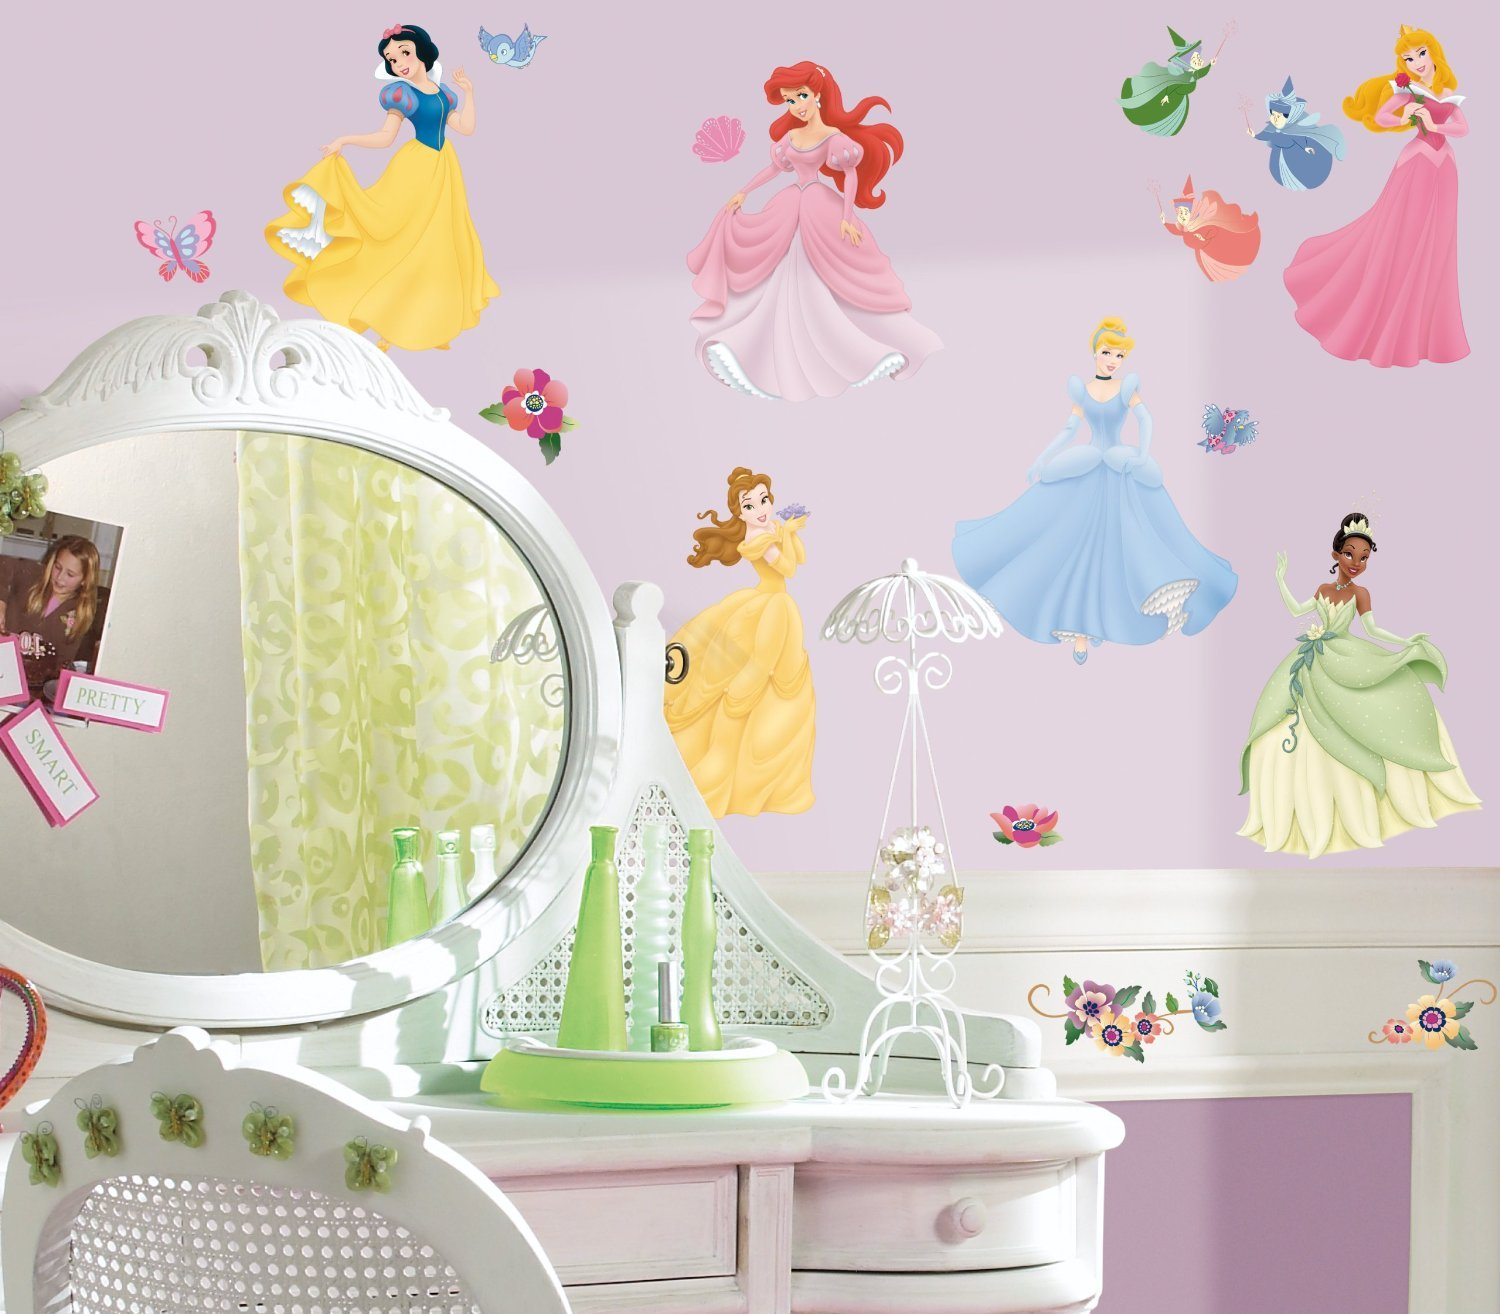 100 princess sofia wall stickers sofia the first poster princess sofia wall stickers amazon com disney princess peel stick wall decal home kitchen